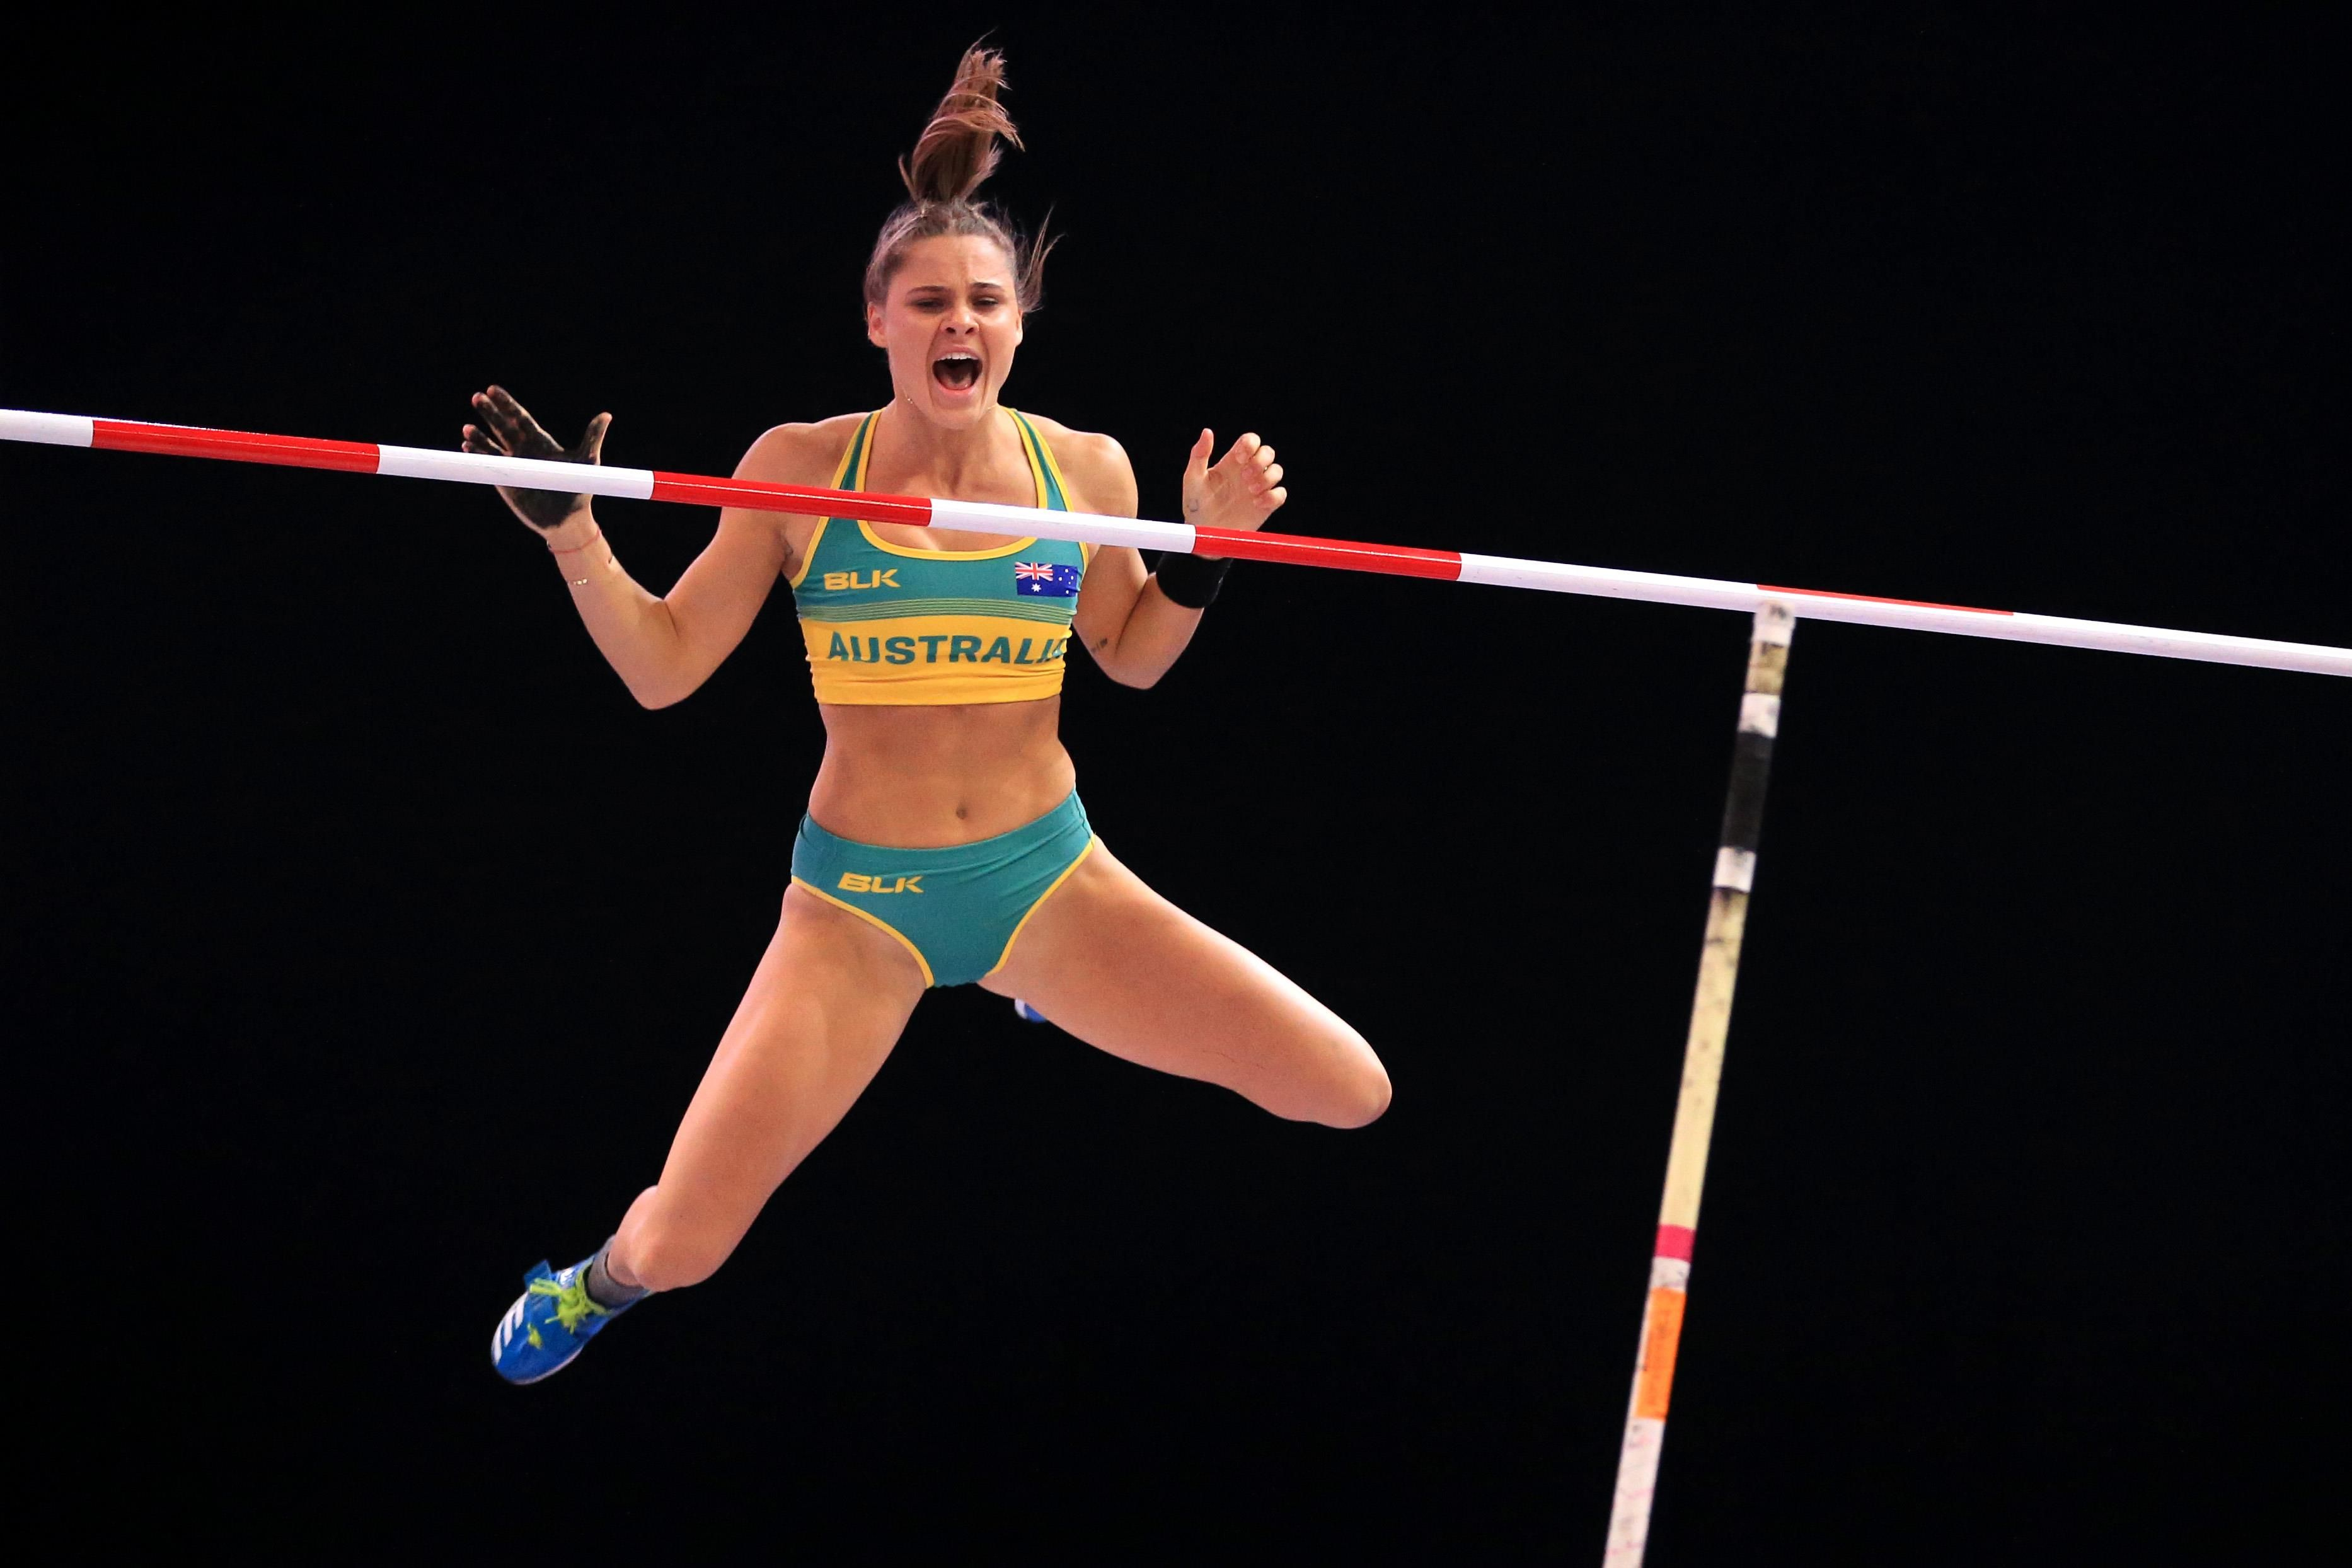 For many people, lockdown evokes emotions of frustration and anxiety. Yet for recently-minted Australian pole vault record-holder Nina Kennedy, she credits the period last year for helping transform her career.